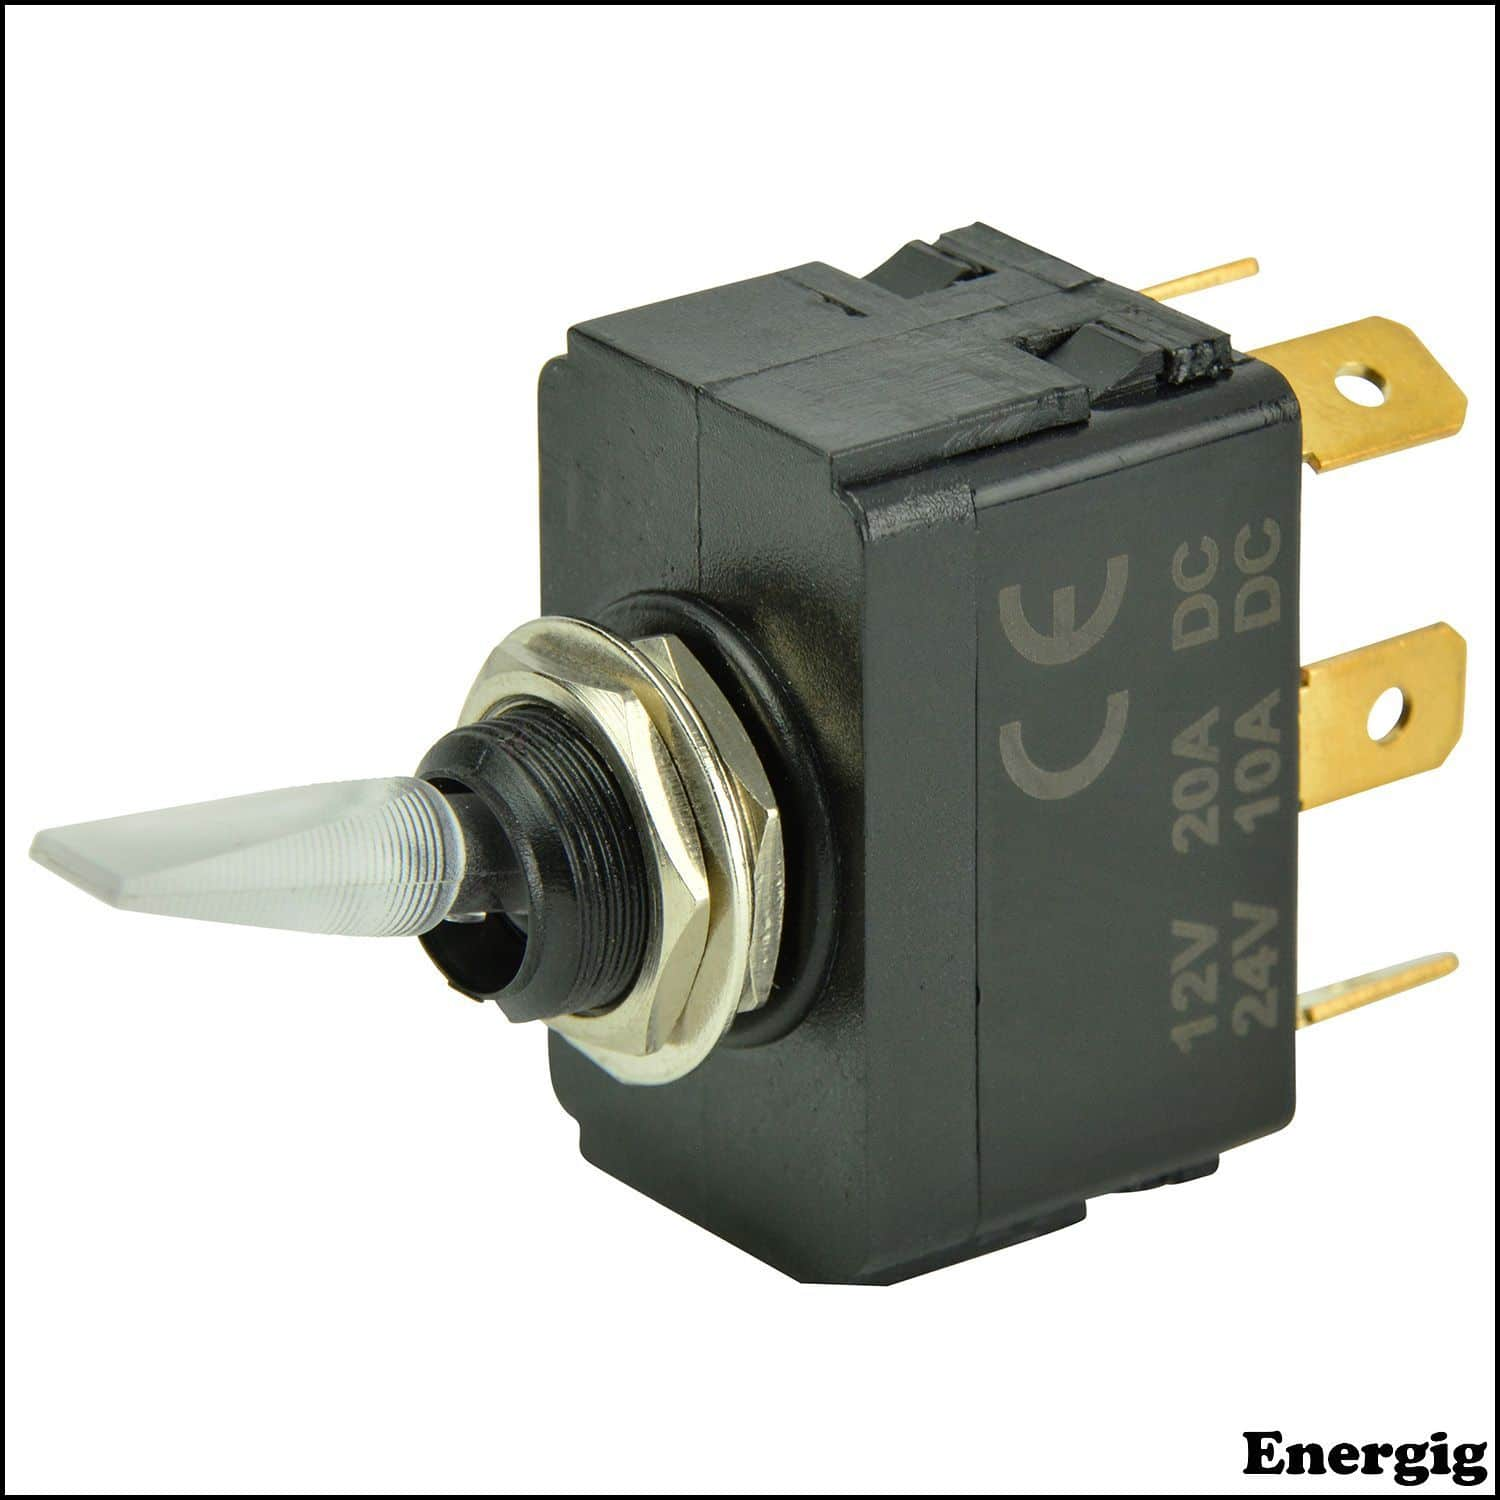 Wiring A 12v Lighted Toggle Switch